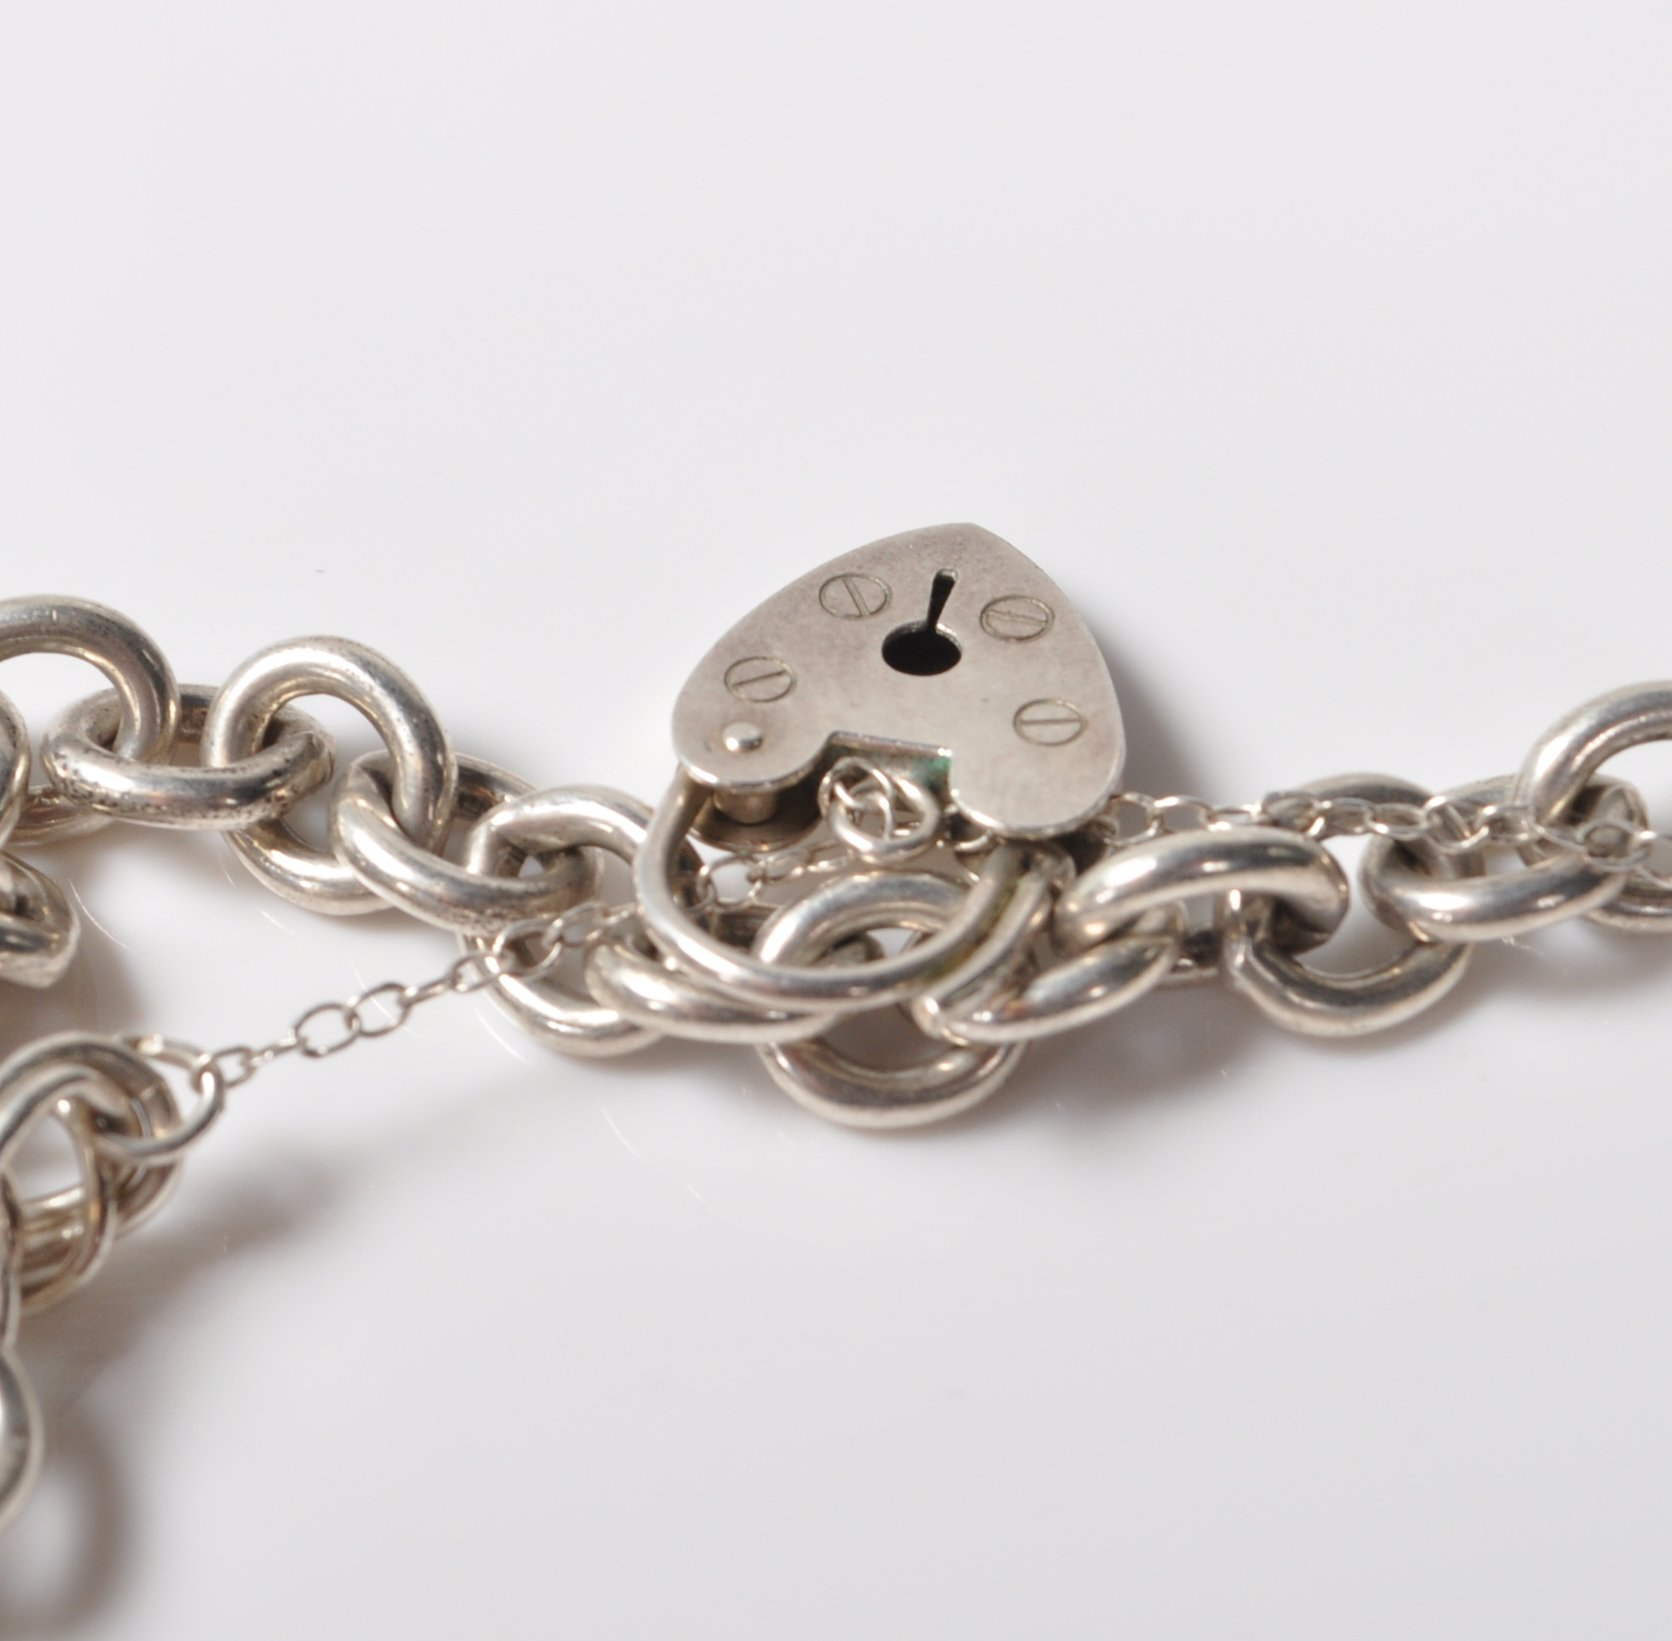 SILVER STAMPED 925 CHARM BRACELET. TOTAL WEIGHT 64 GRAMS. - Image 5 of 8